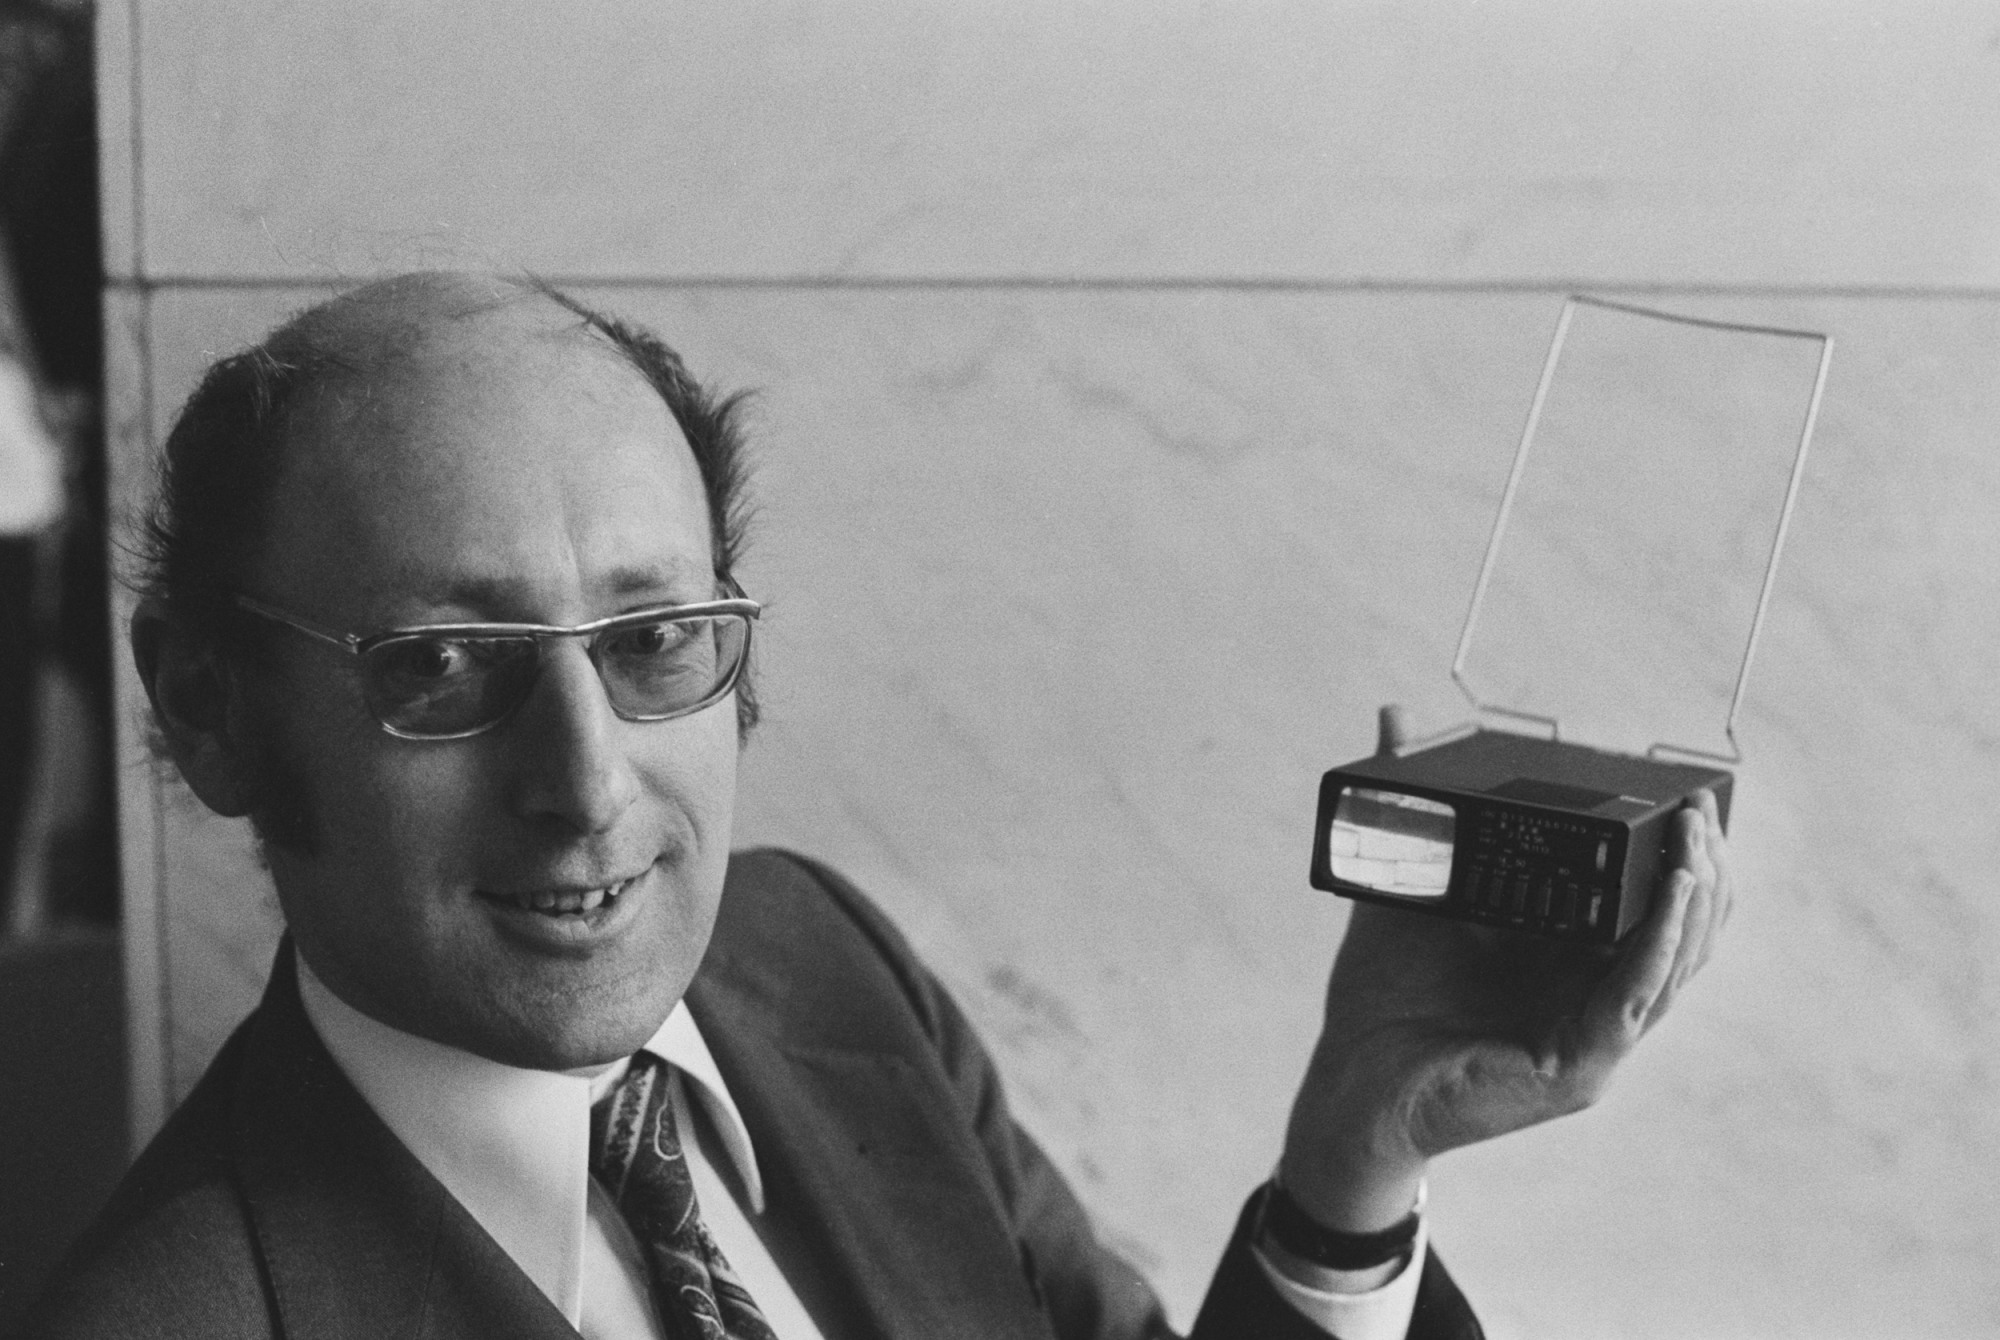 Clive Sinclair, British Computing Inventor Who Released Affordable Home Computers, Dies at 81